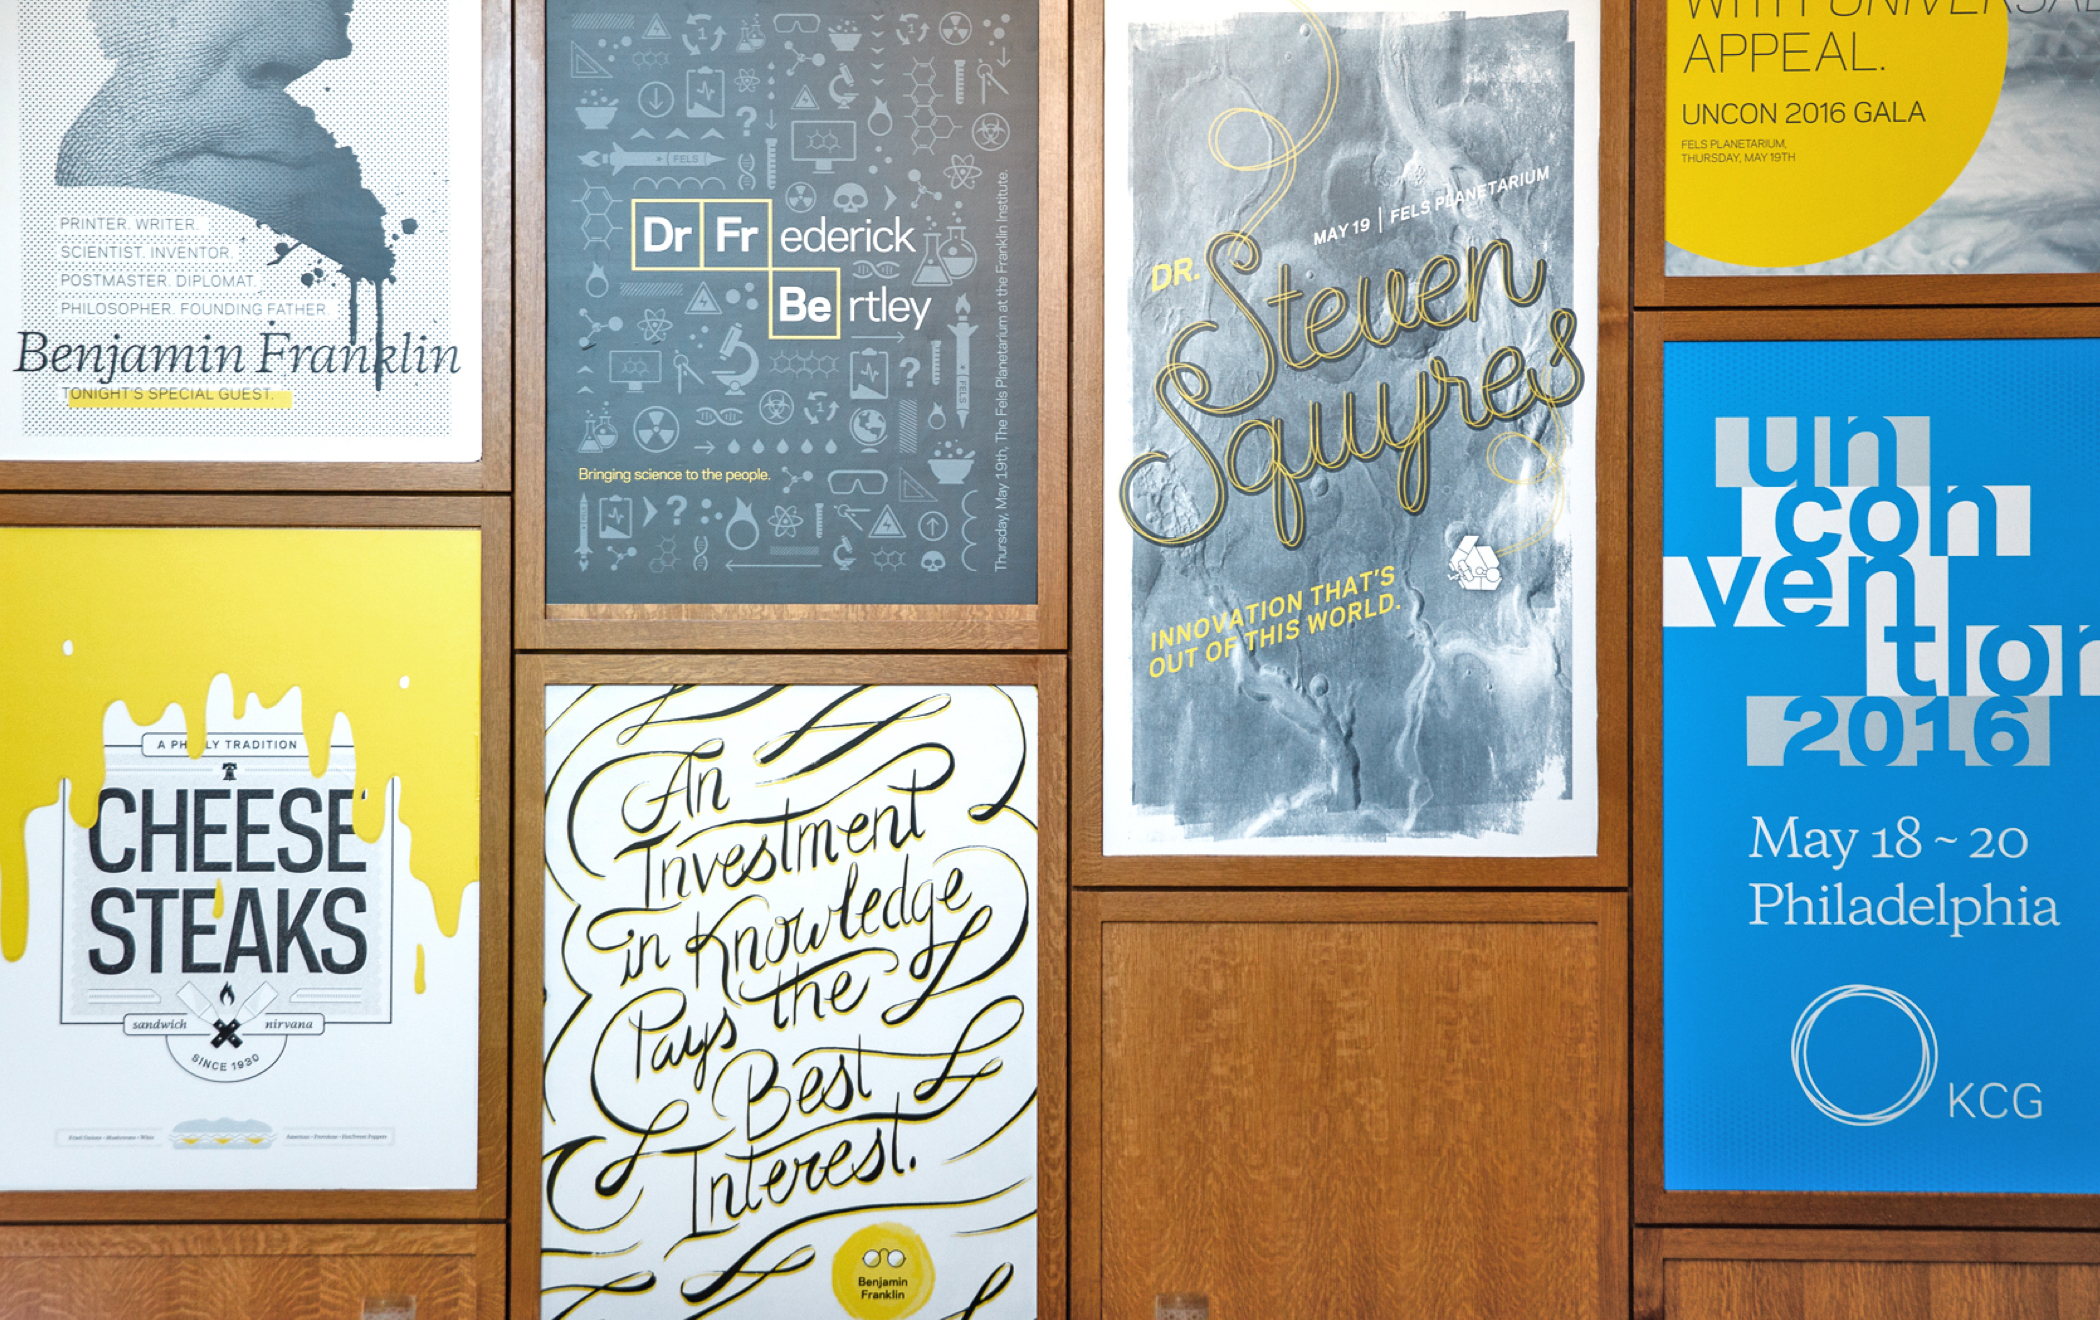 Several illustrated event posters on the wall of the meeting area at the 2016 KCG Uncon client event in Philadelphia.